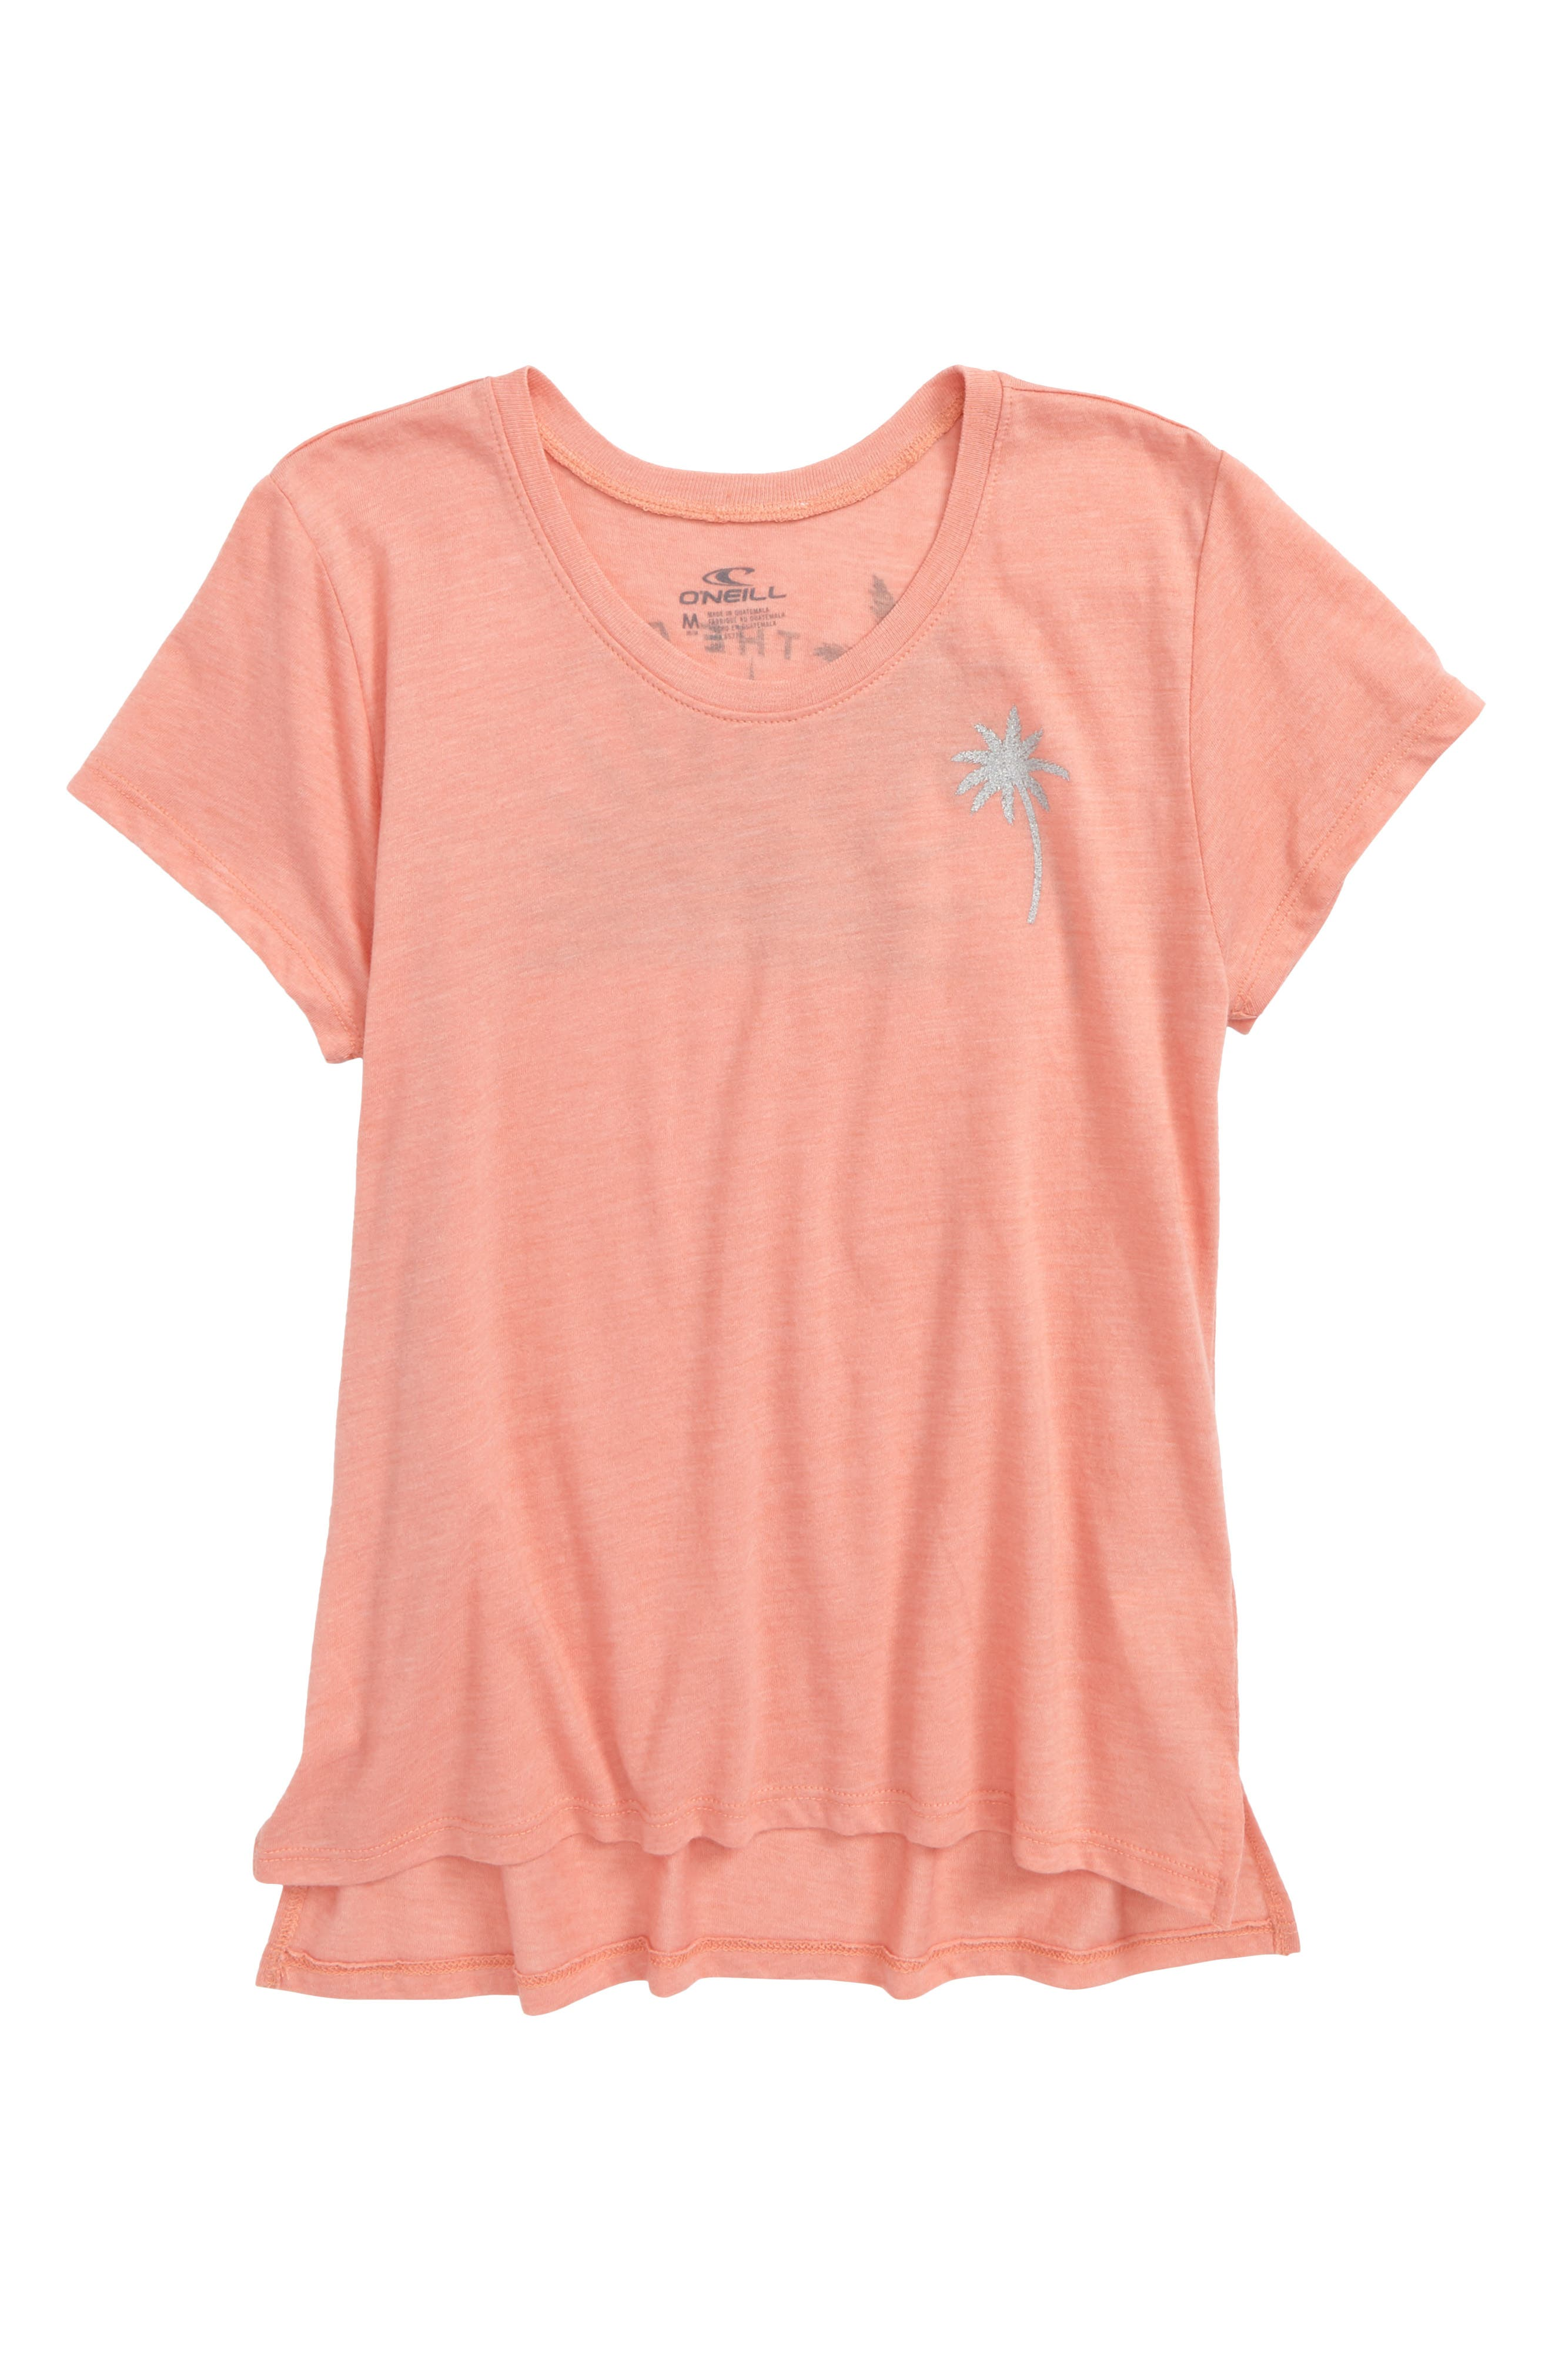 Sunny Side Graphic Tee,                             Main thumbnail 1, color,                             Terracotta- Cla